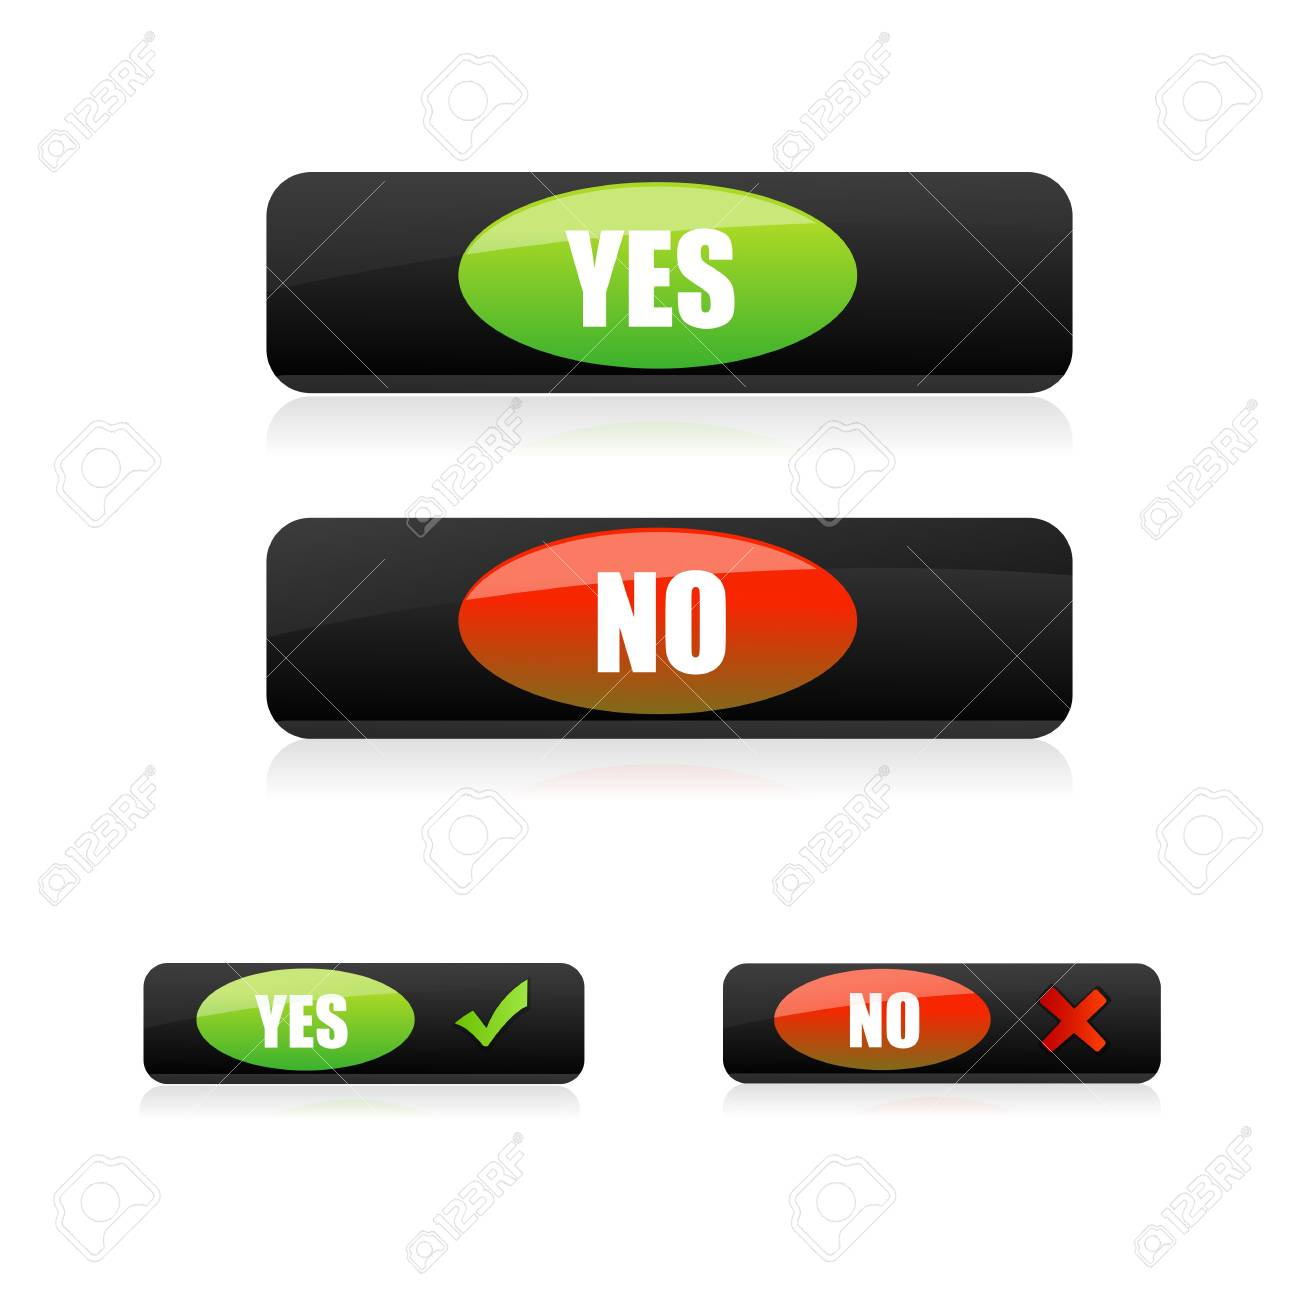 illustration of yes and no buttons on white background Stock Photo - 8511345